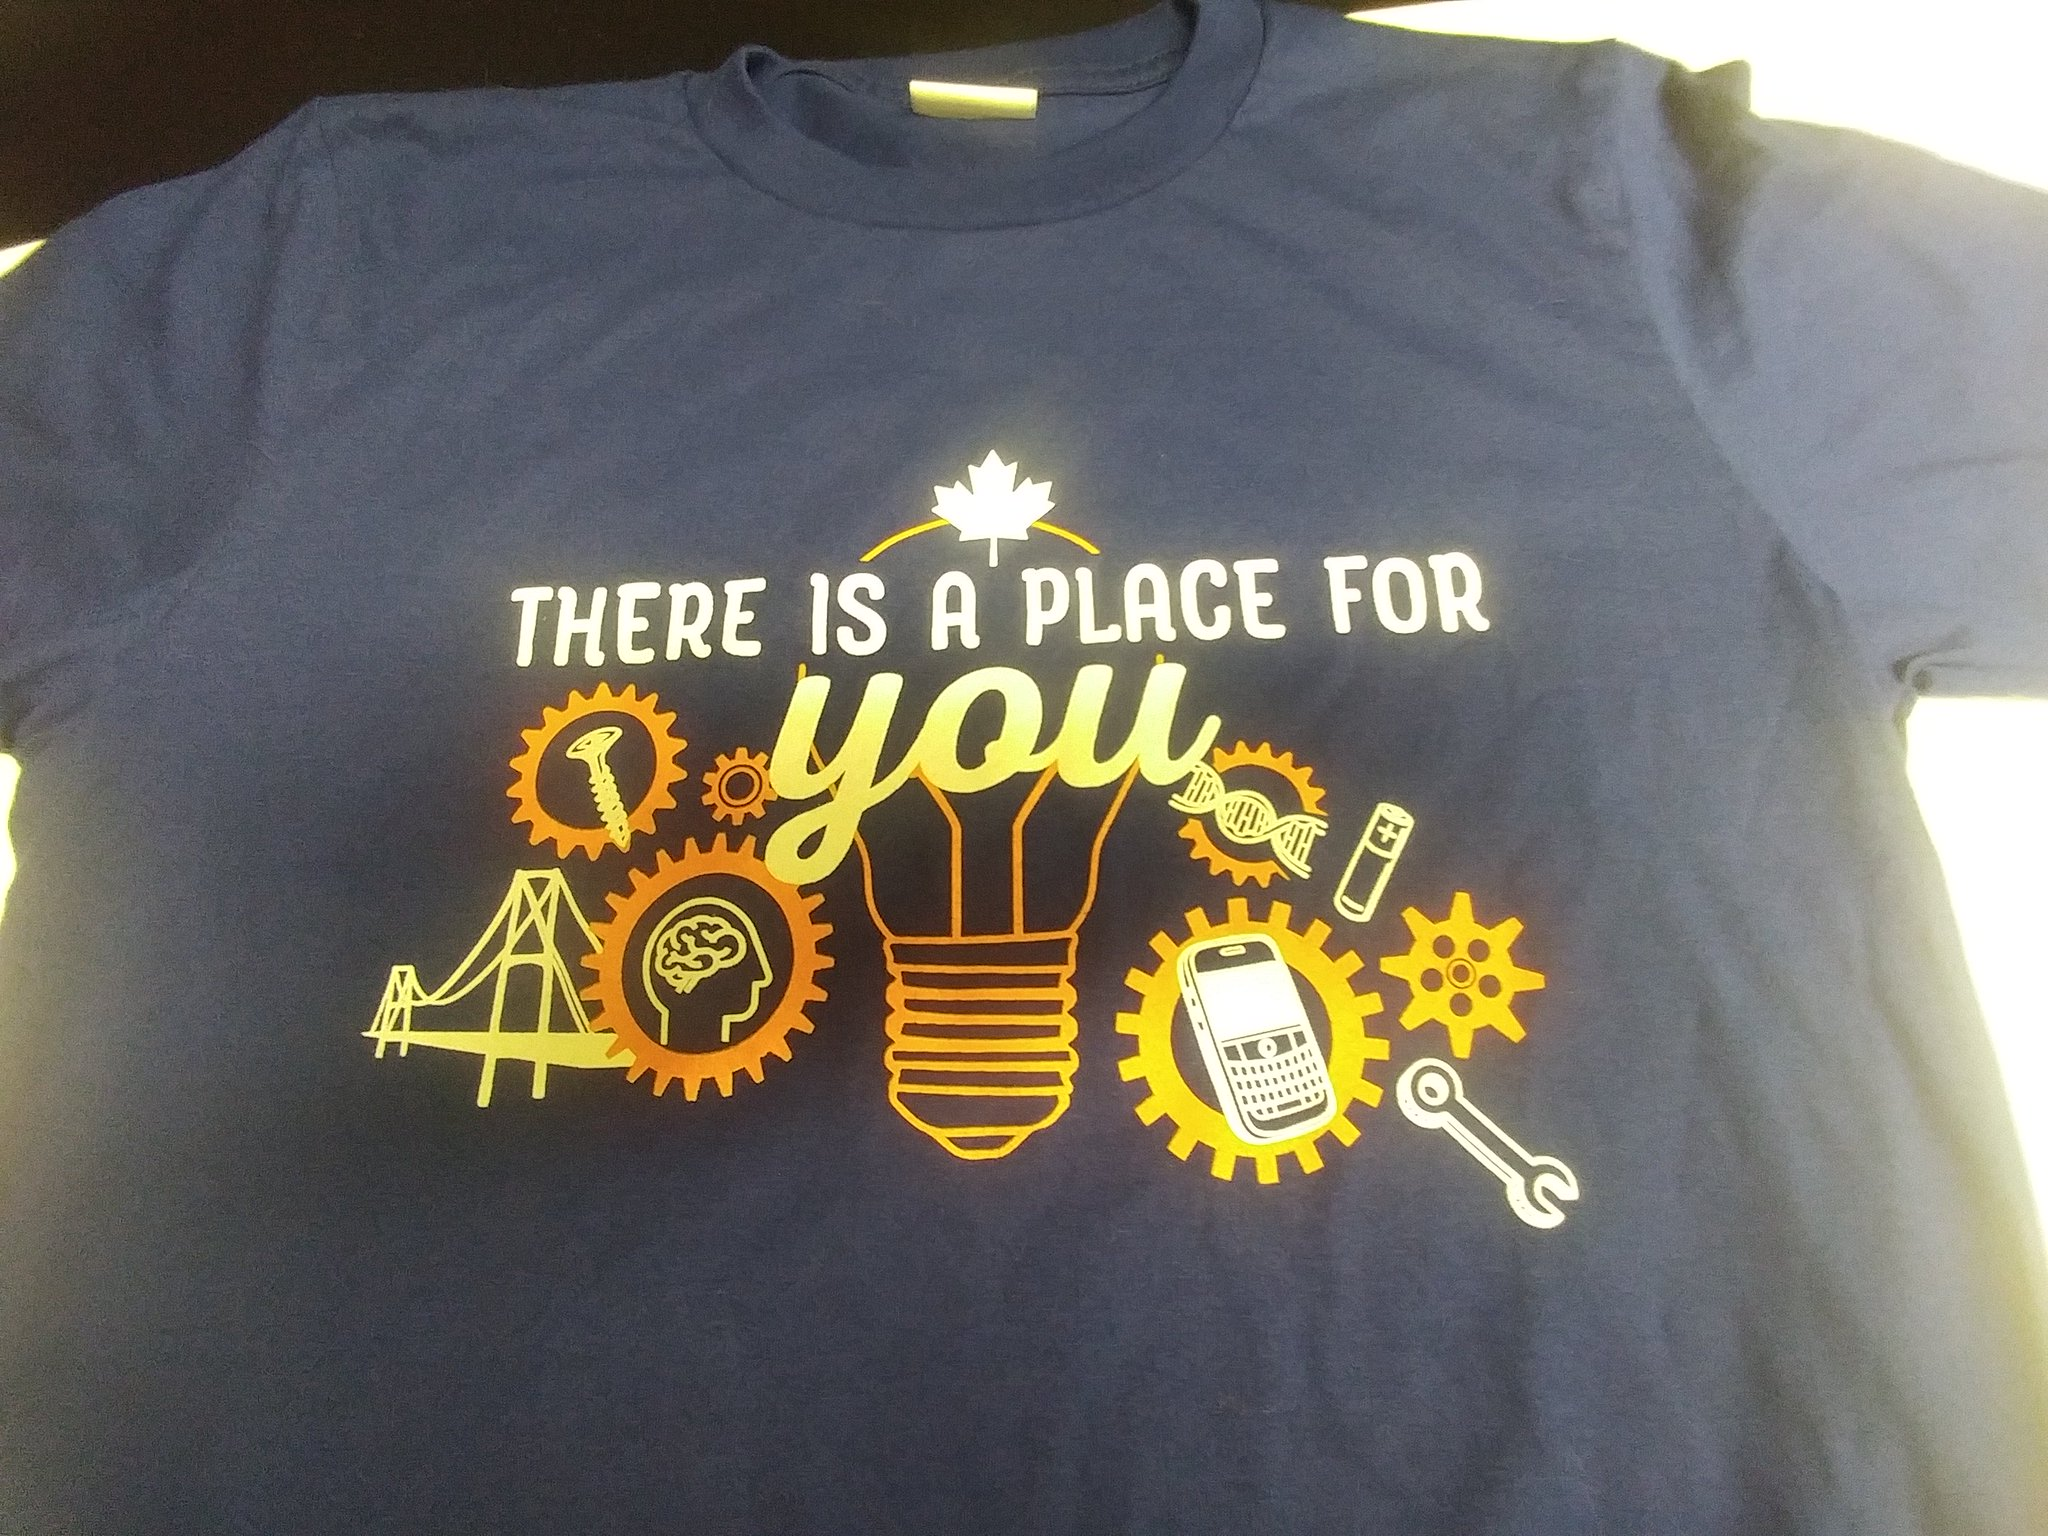 You have to be there to win one of these #NEM2017 t-shirts that look much better in person! #ChangeTheRatioWR tix: https://t.co/mgQBaj5WQD https://t.co/KszQWUcexi